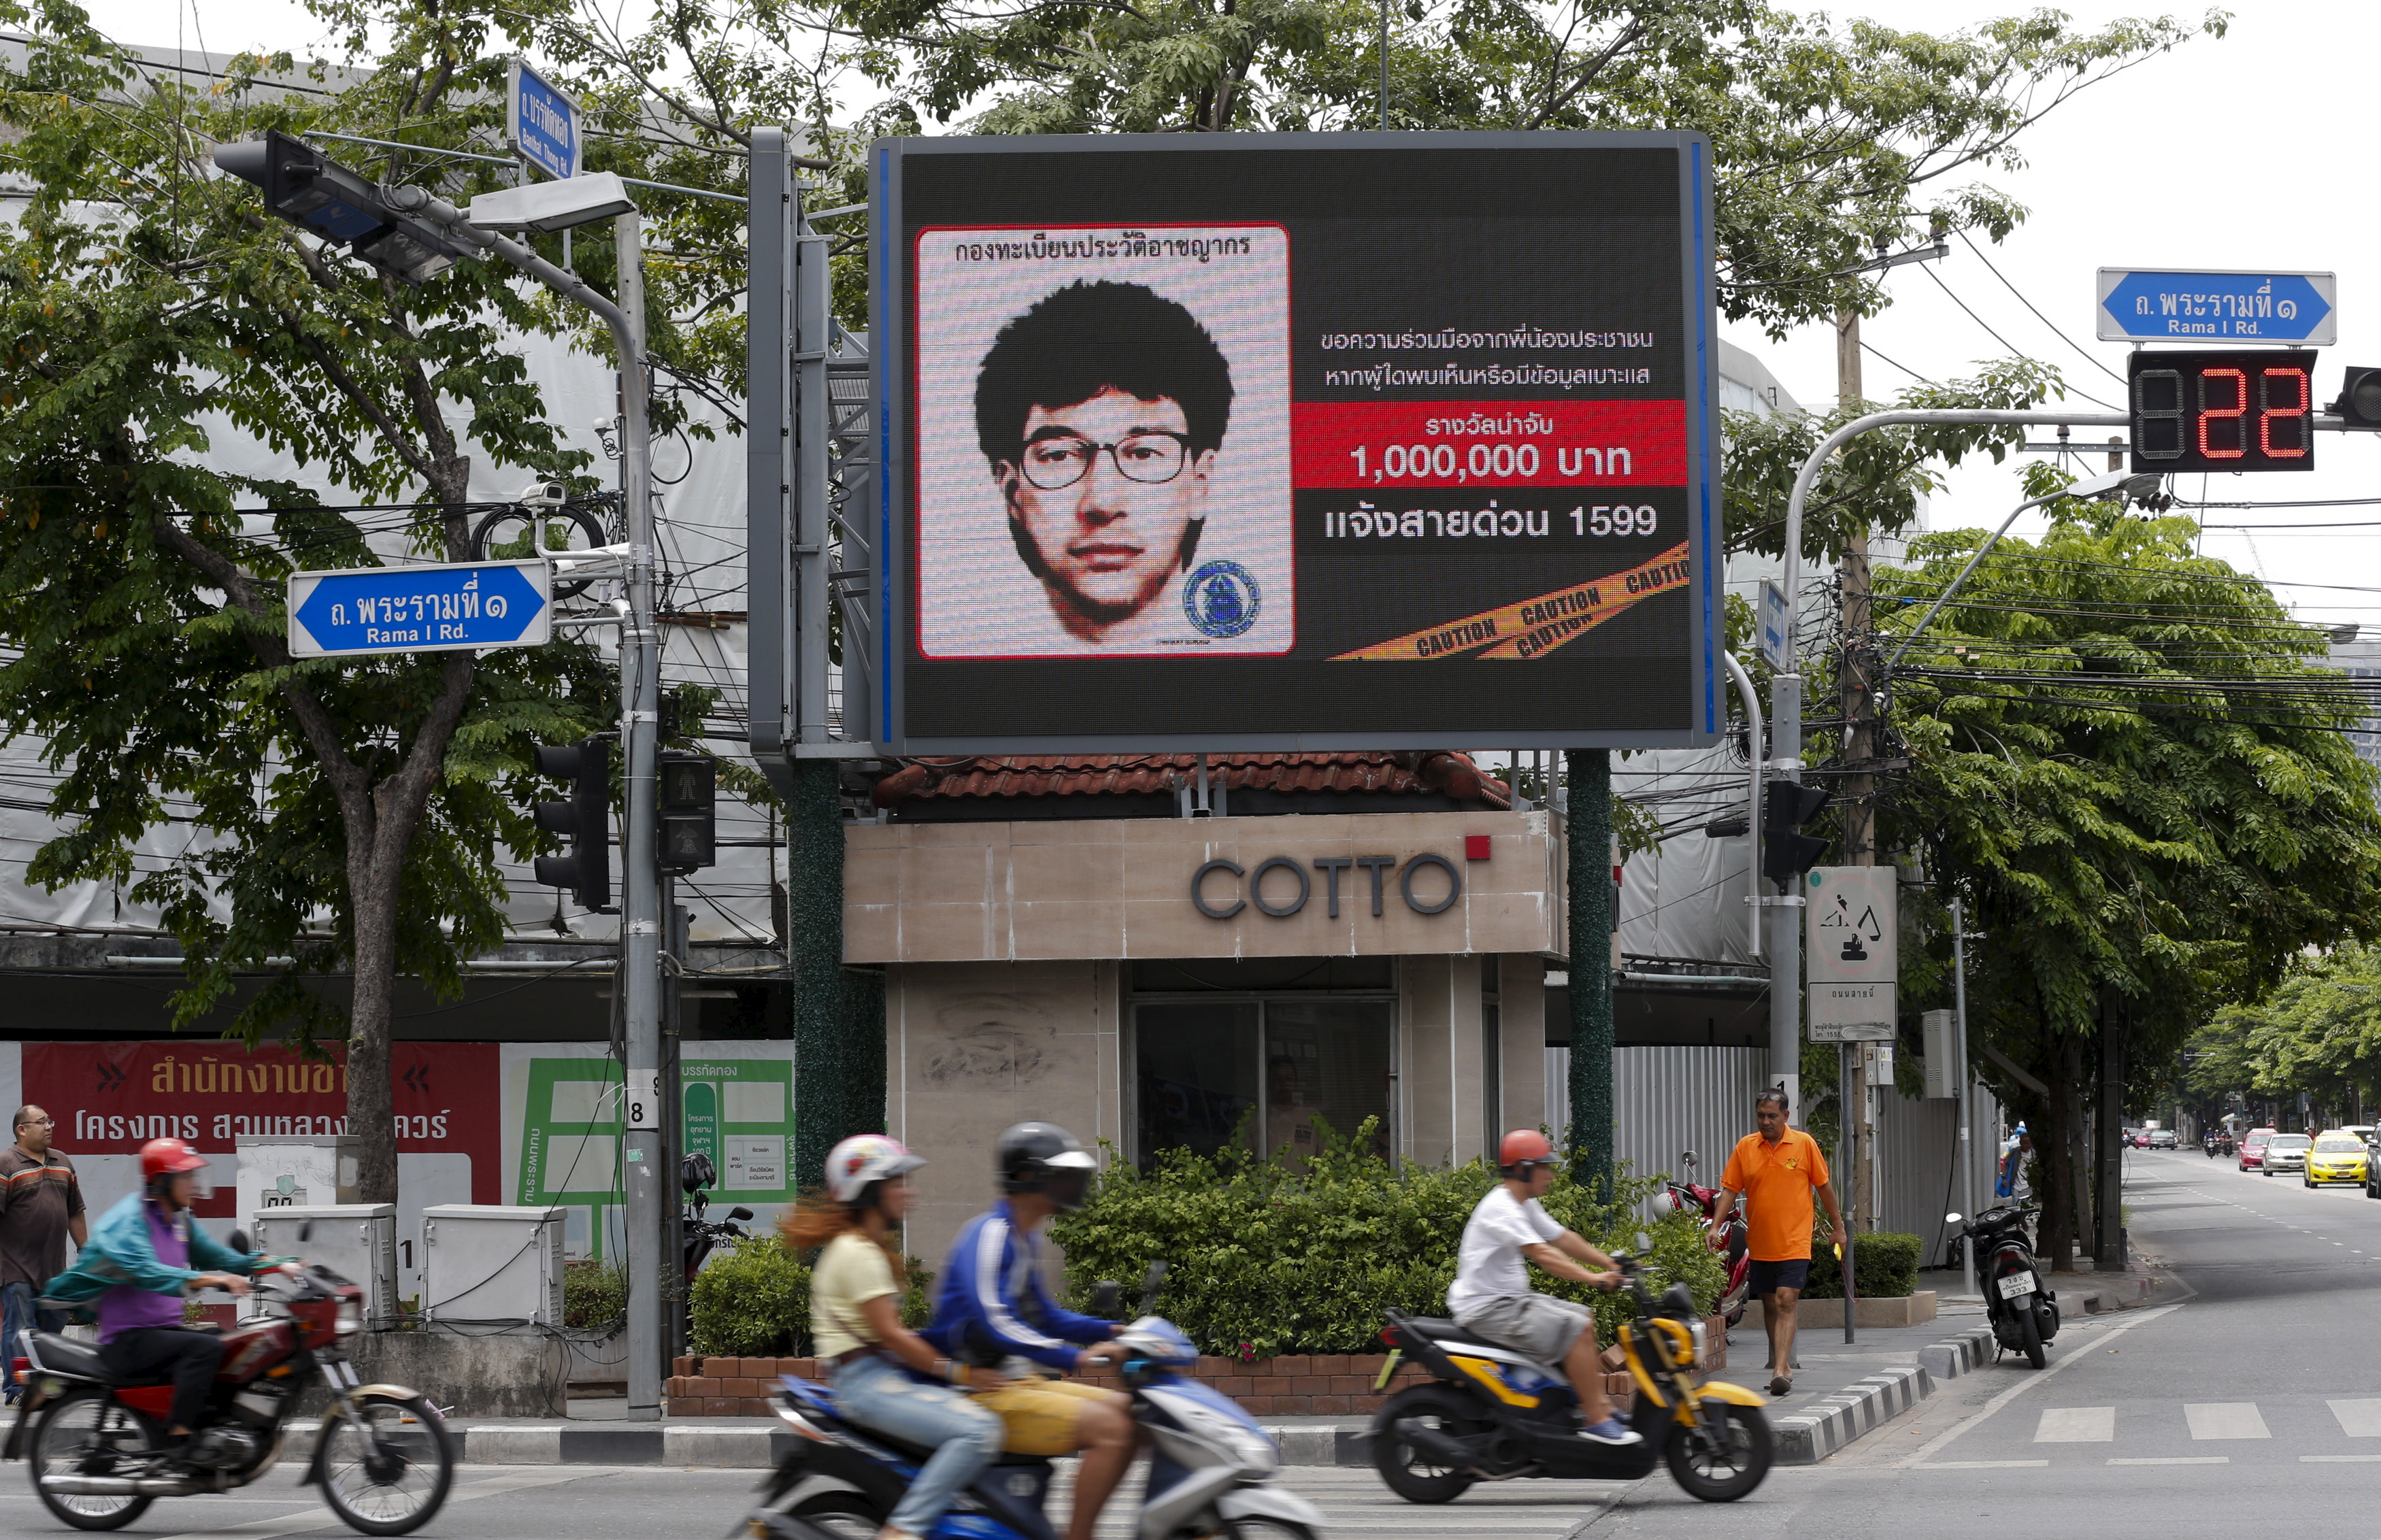 People ride their motorcycles past a digital billboard showing a sketch of the main suspect in the Aug. 17 attack on Erawan shrine in Bangkok on Aug. 23, 2015